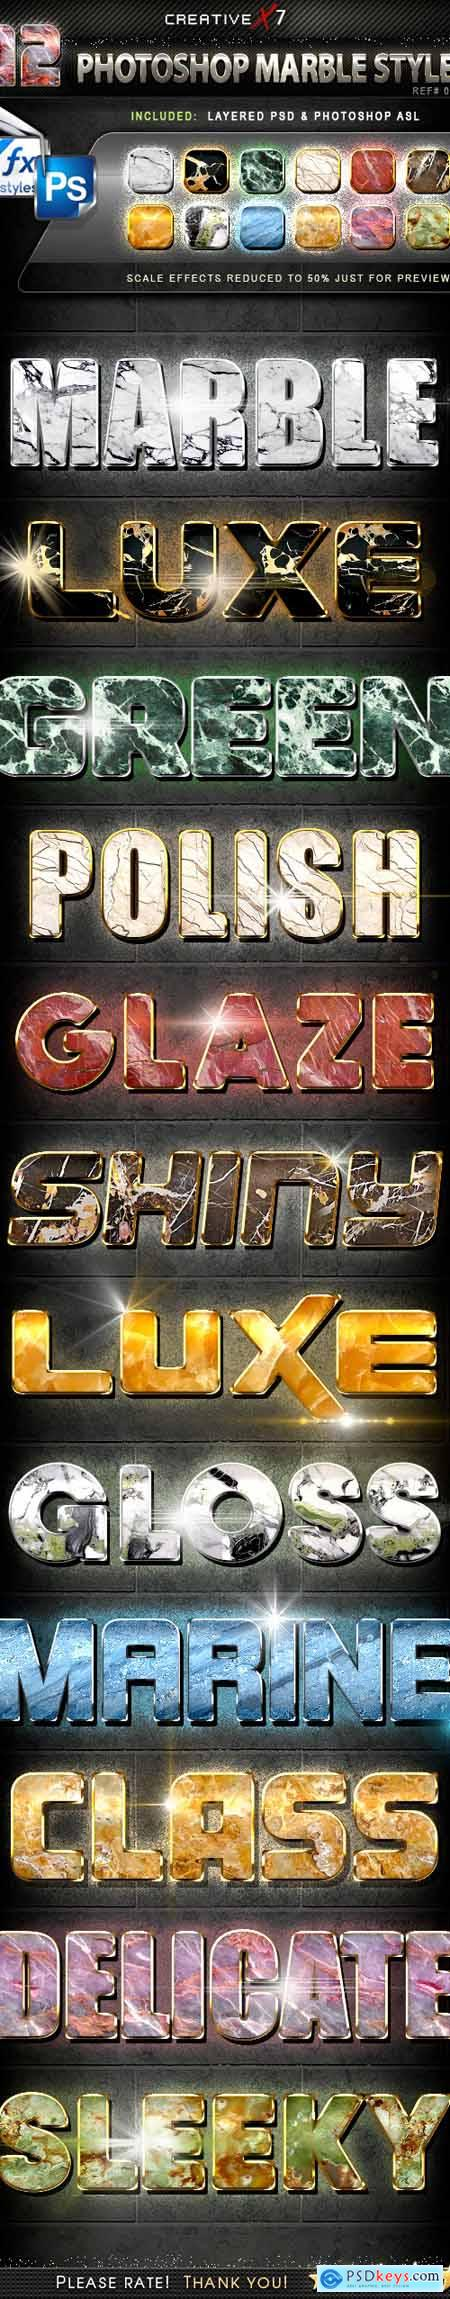 CreativeX7 - 12 Photoshop Marble Styles 24871377